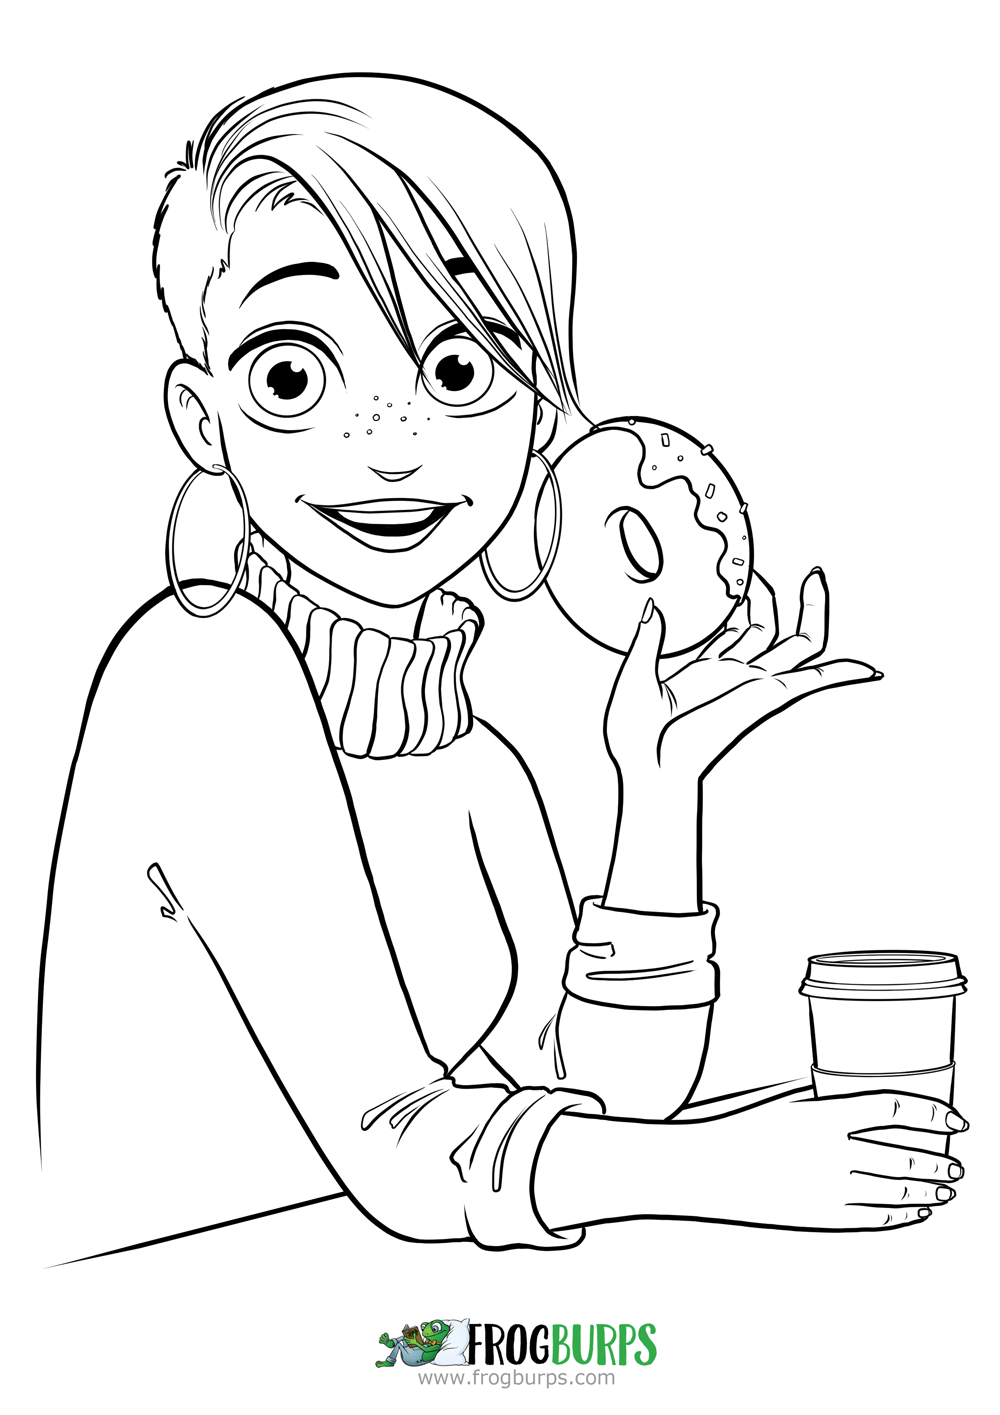 Donut Girl | Coloring Page